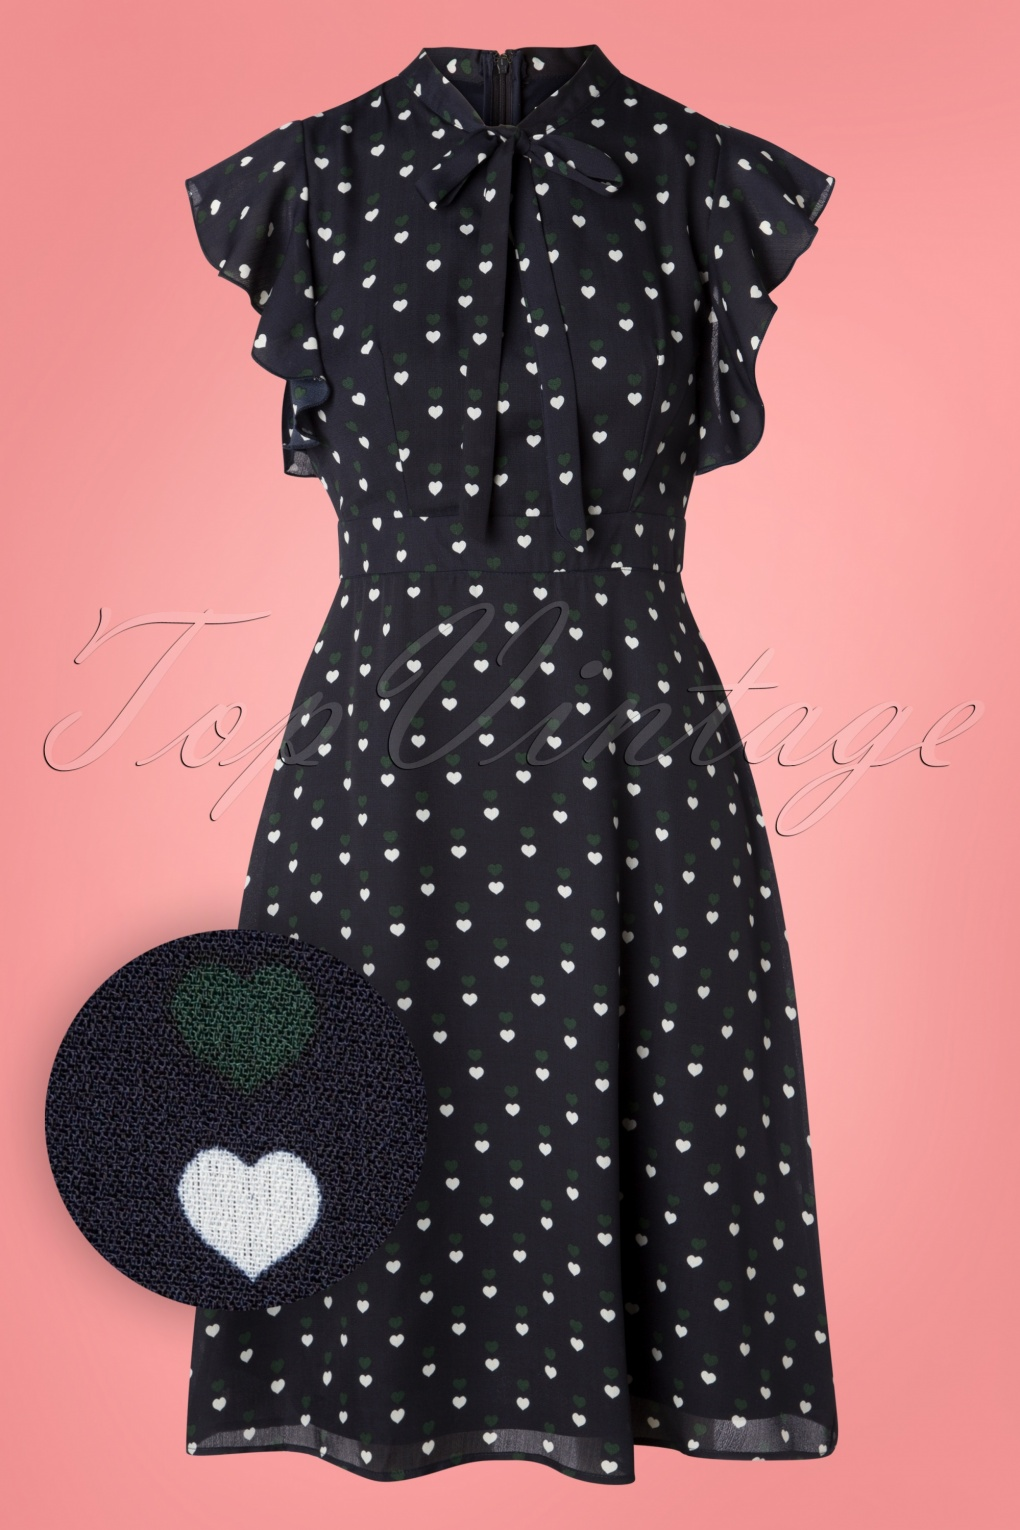 1930s Day Dresses, Afternoon Dresses History Florrie Heart Dots Dress in Navy £55.33 AT vintagedancer.com